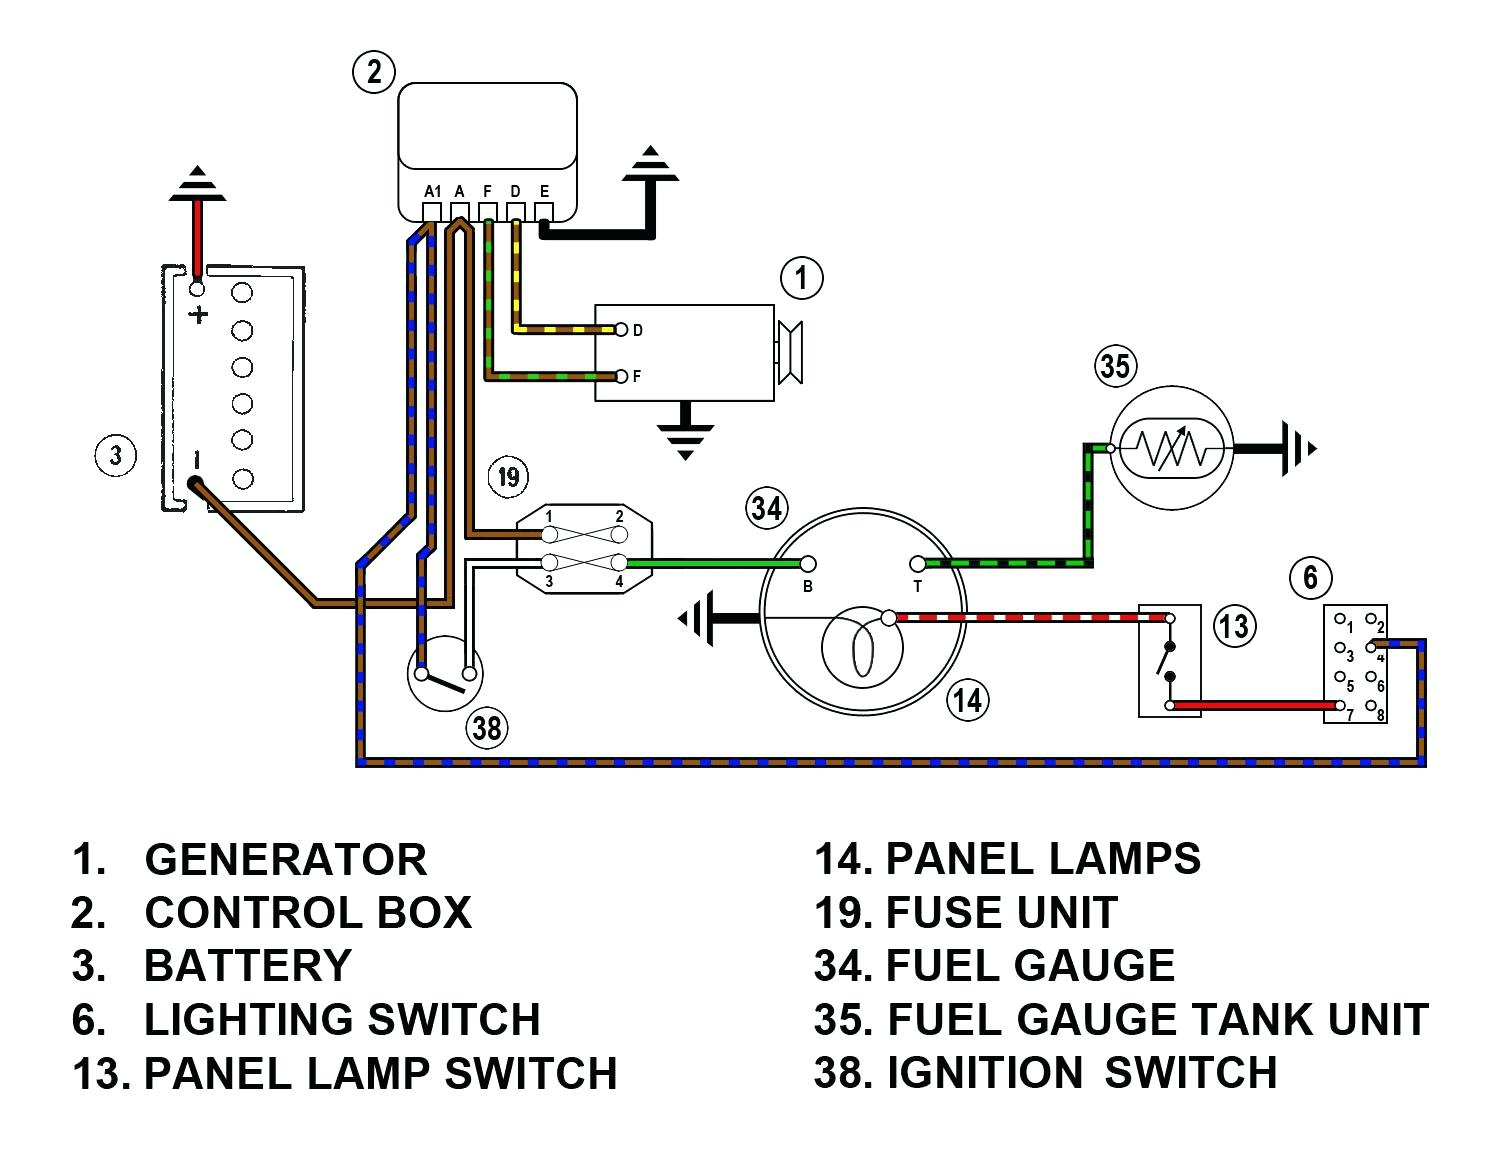 Fluorescent Ballast Wiring Diagram Download Sample Light Switch Trailer Dump Hydraulic Pump Chevy Silverado